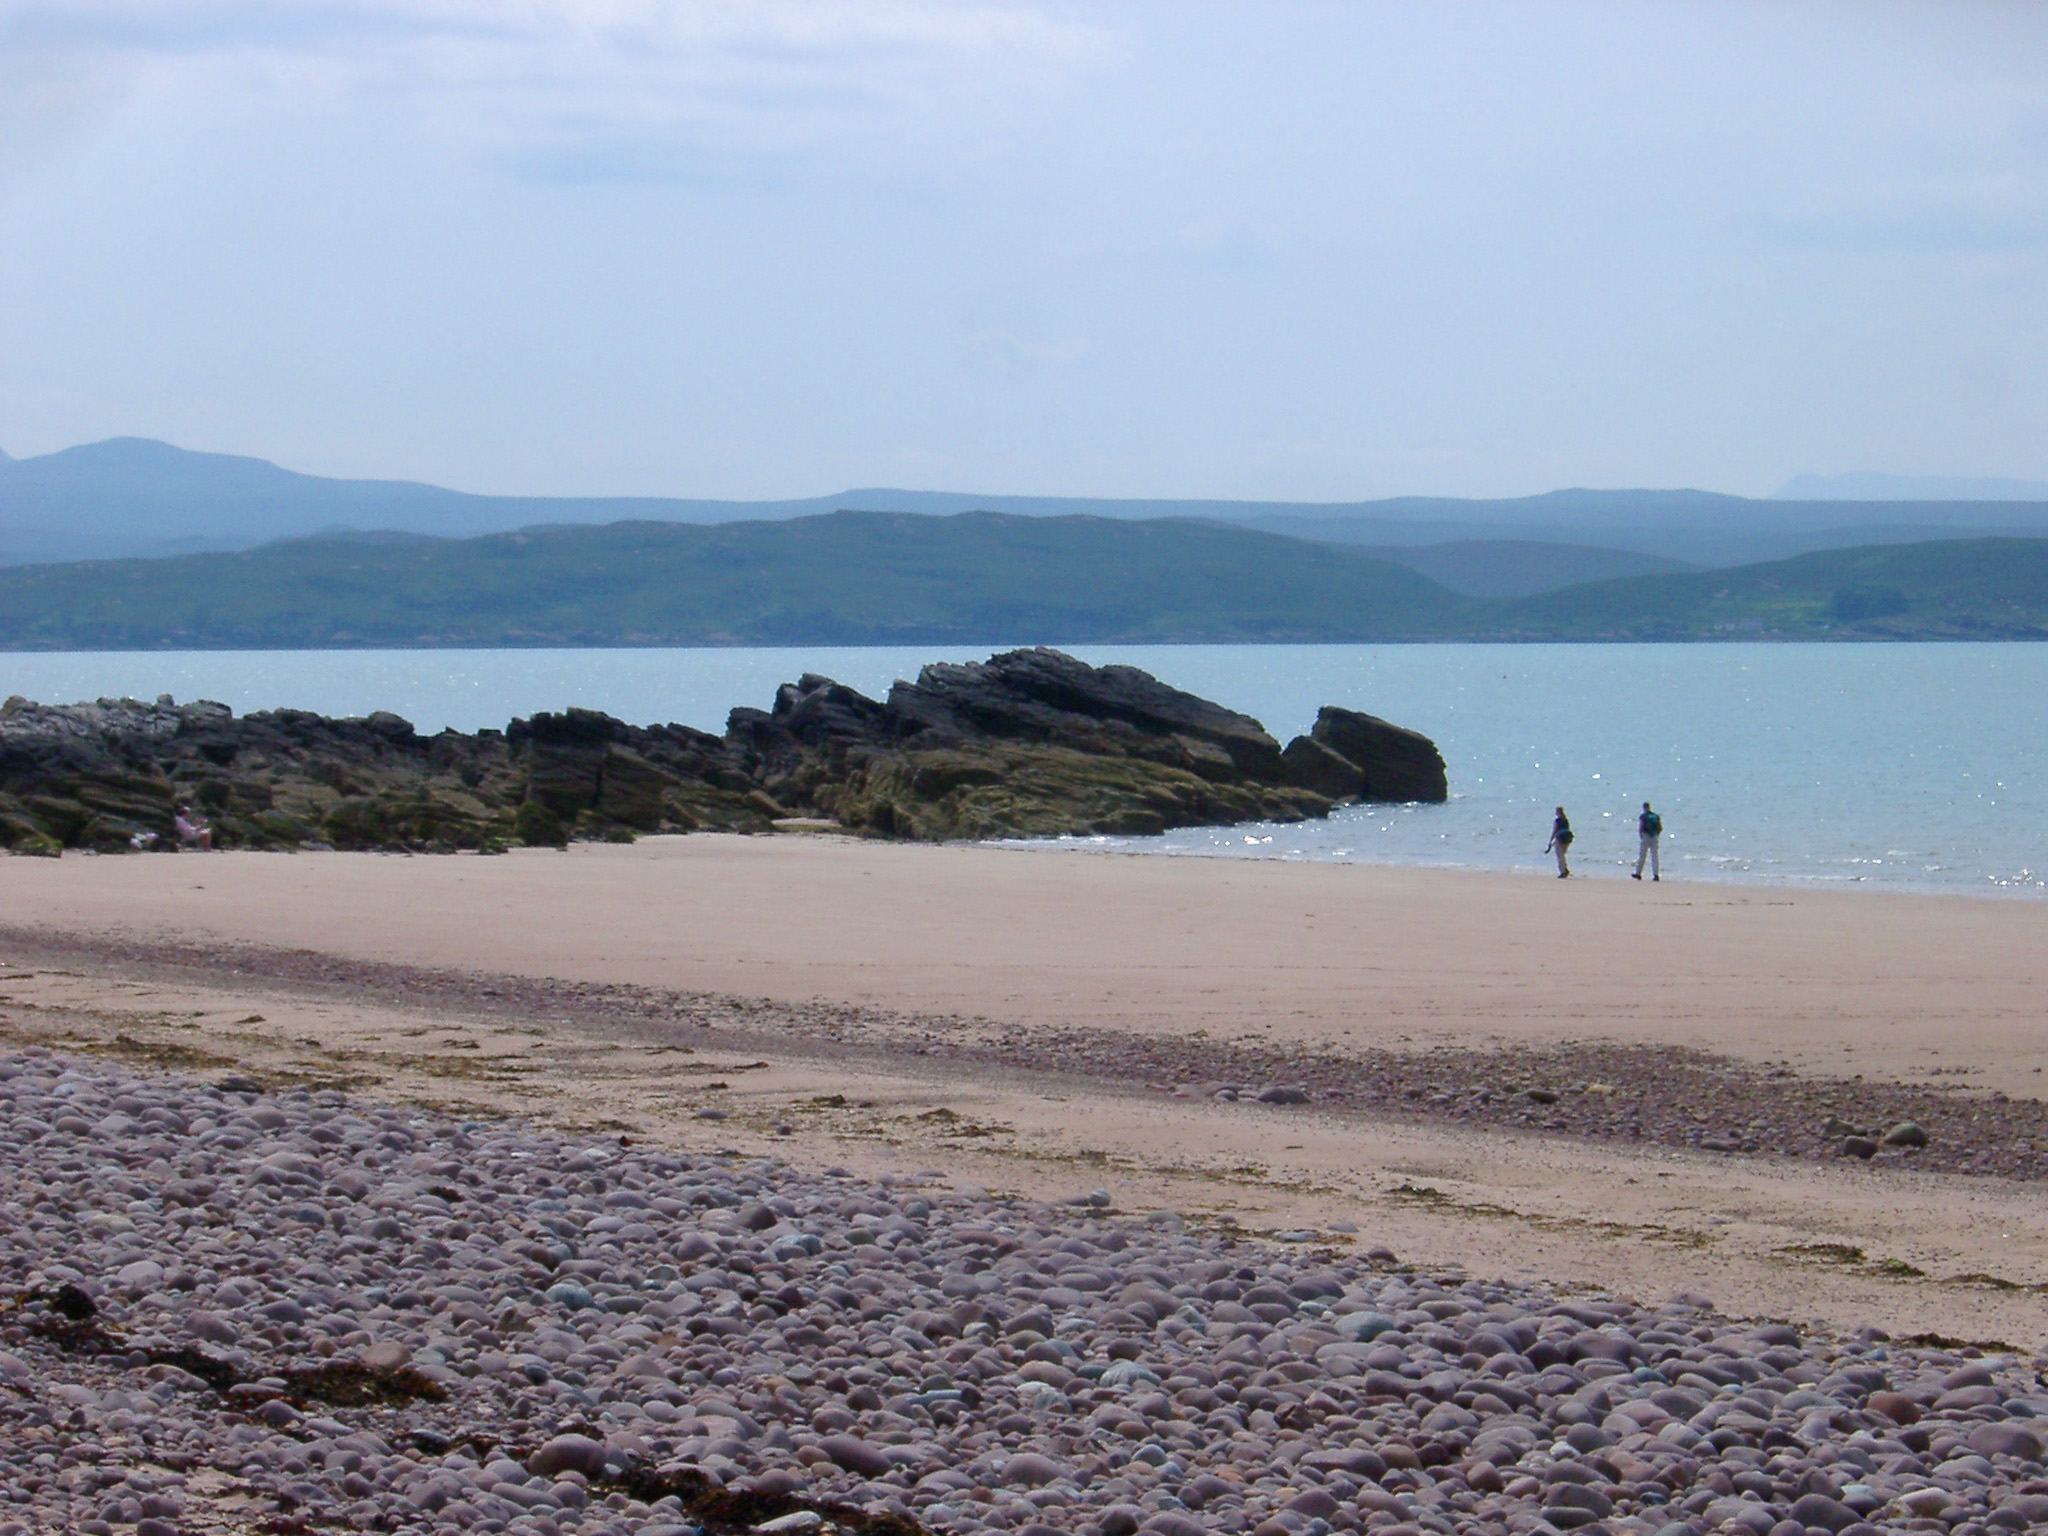 Sandy beach on the shores of Lock Gairloch in the Scottish highlands with people walking along the waters edge in the sunshine